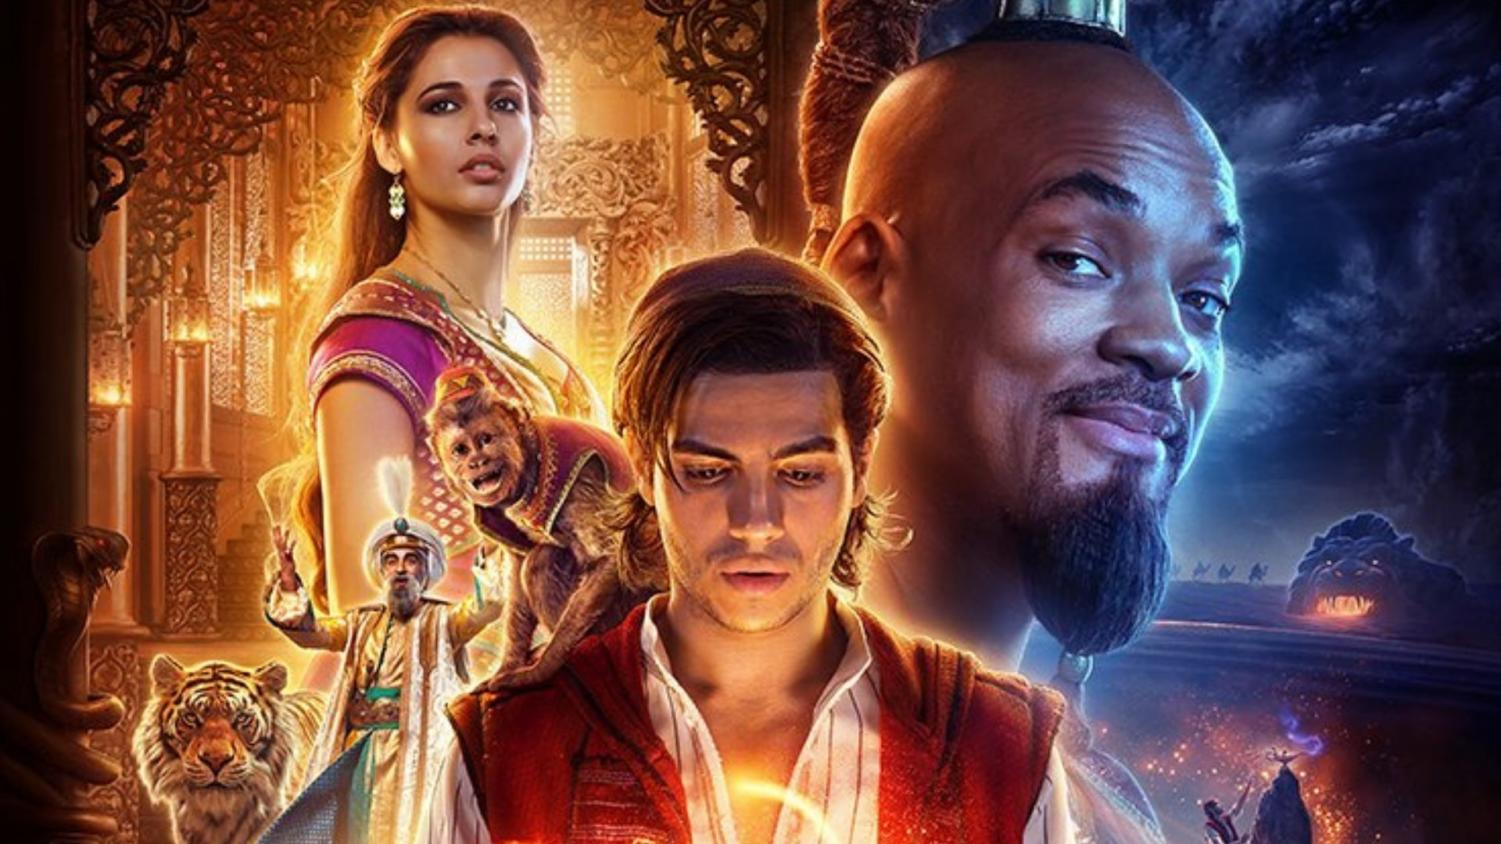 Aladdin was released in threaters on May 24th, 2019.